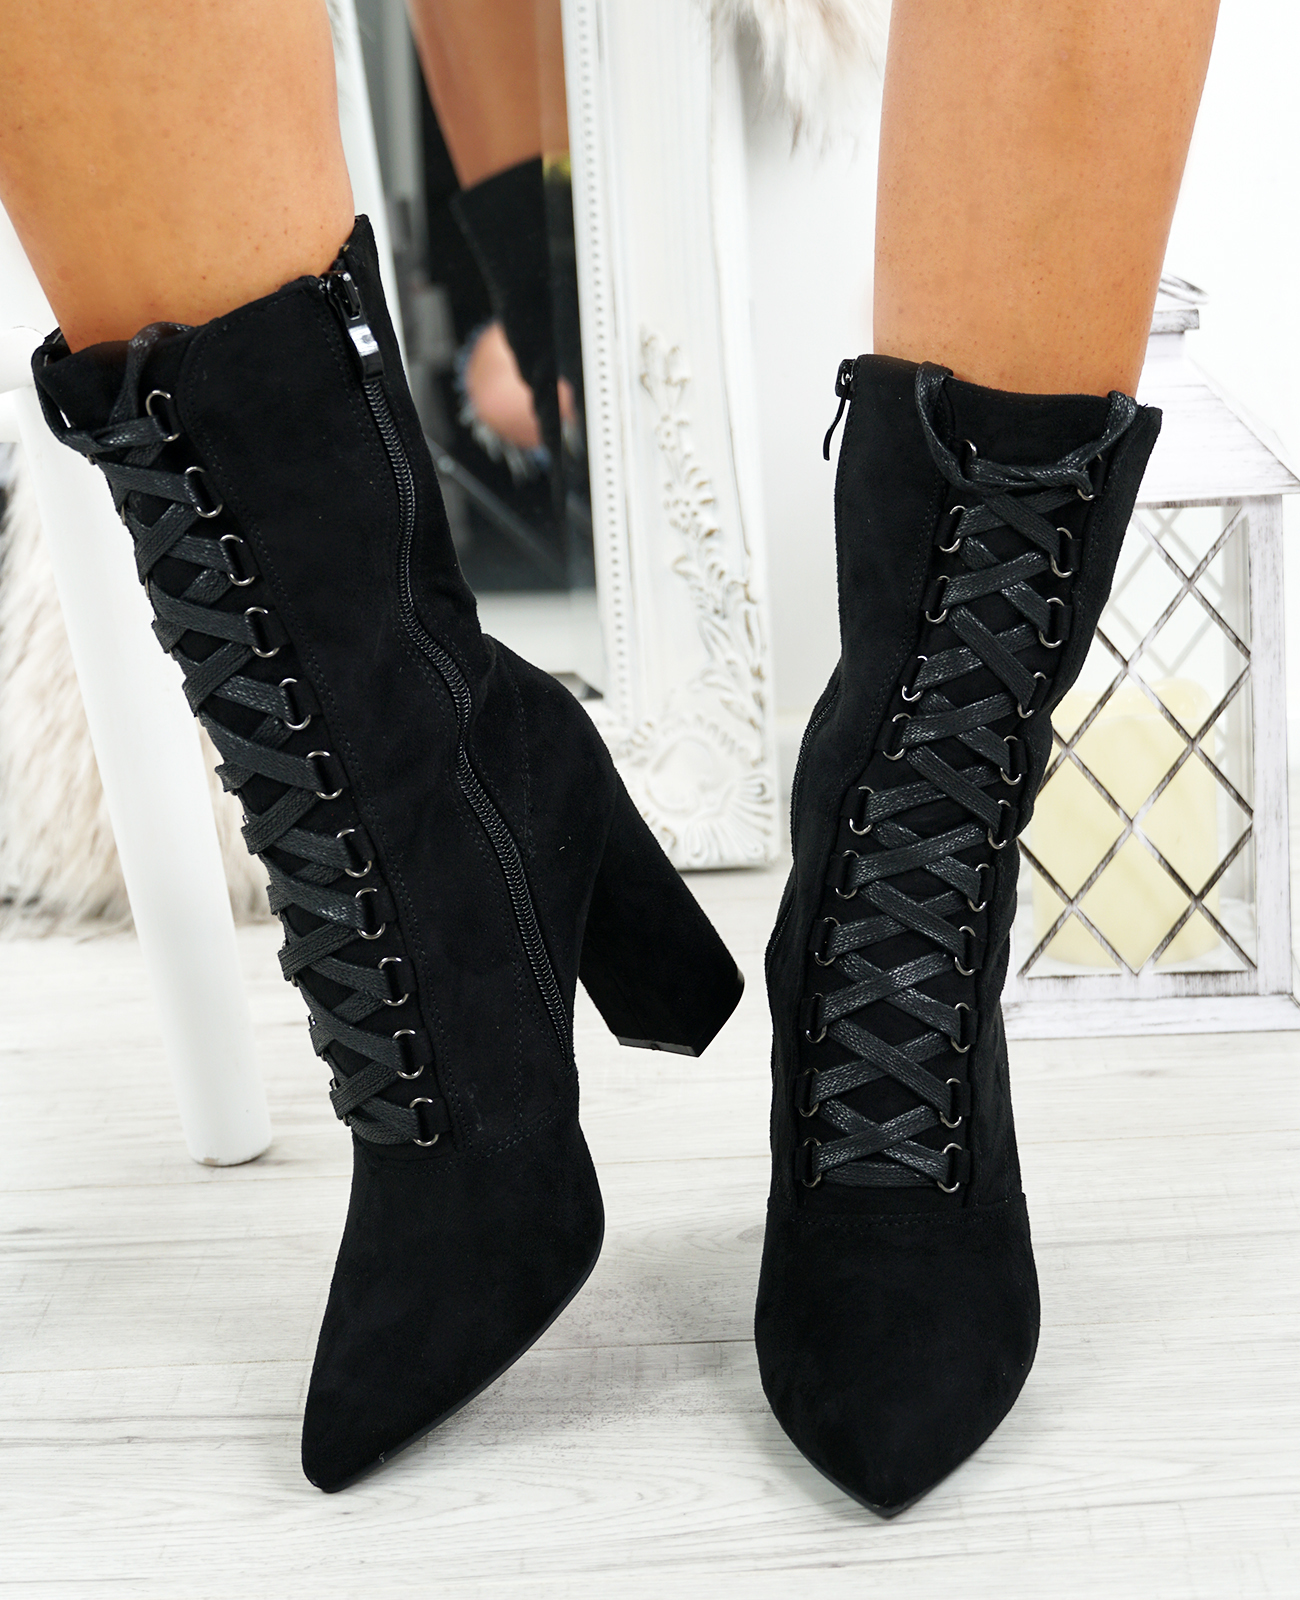 LADIES-WOMENS-HIGH-TOP-ANKLE-BOOTS-SIDE-ZIP-LACE-BLOCK-HEEL-POINTED-TOE-SHOES thumbnail 10